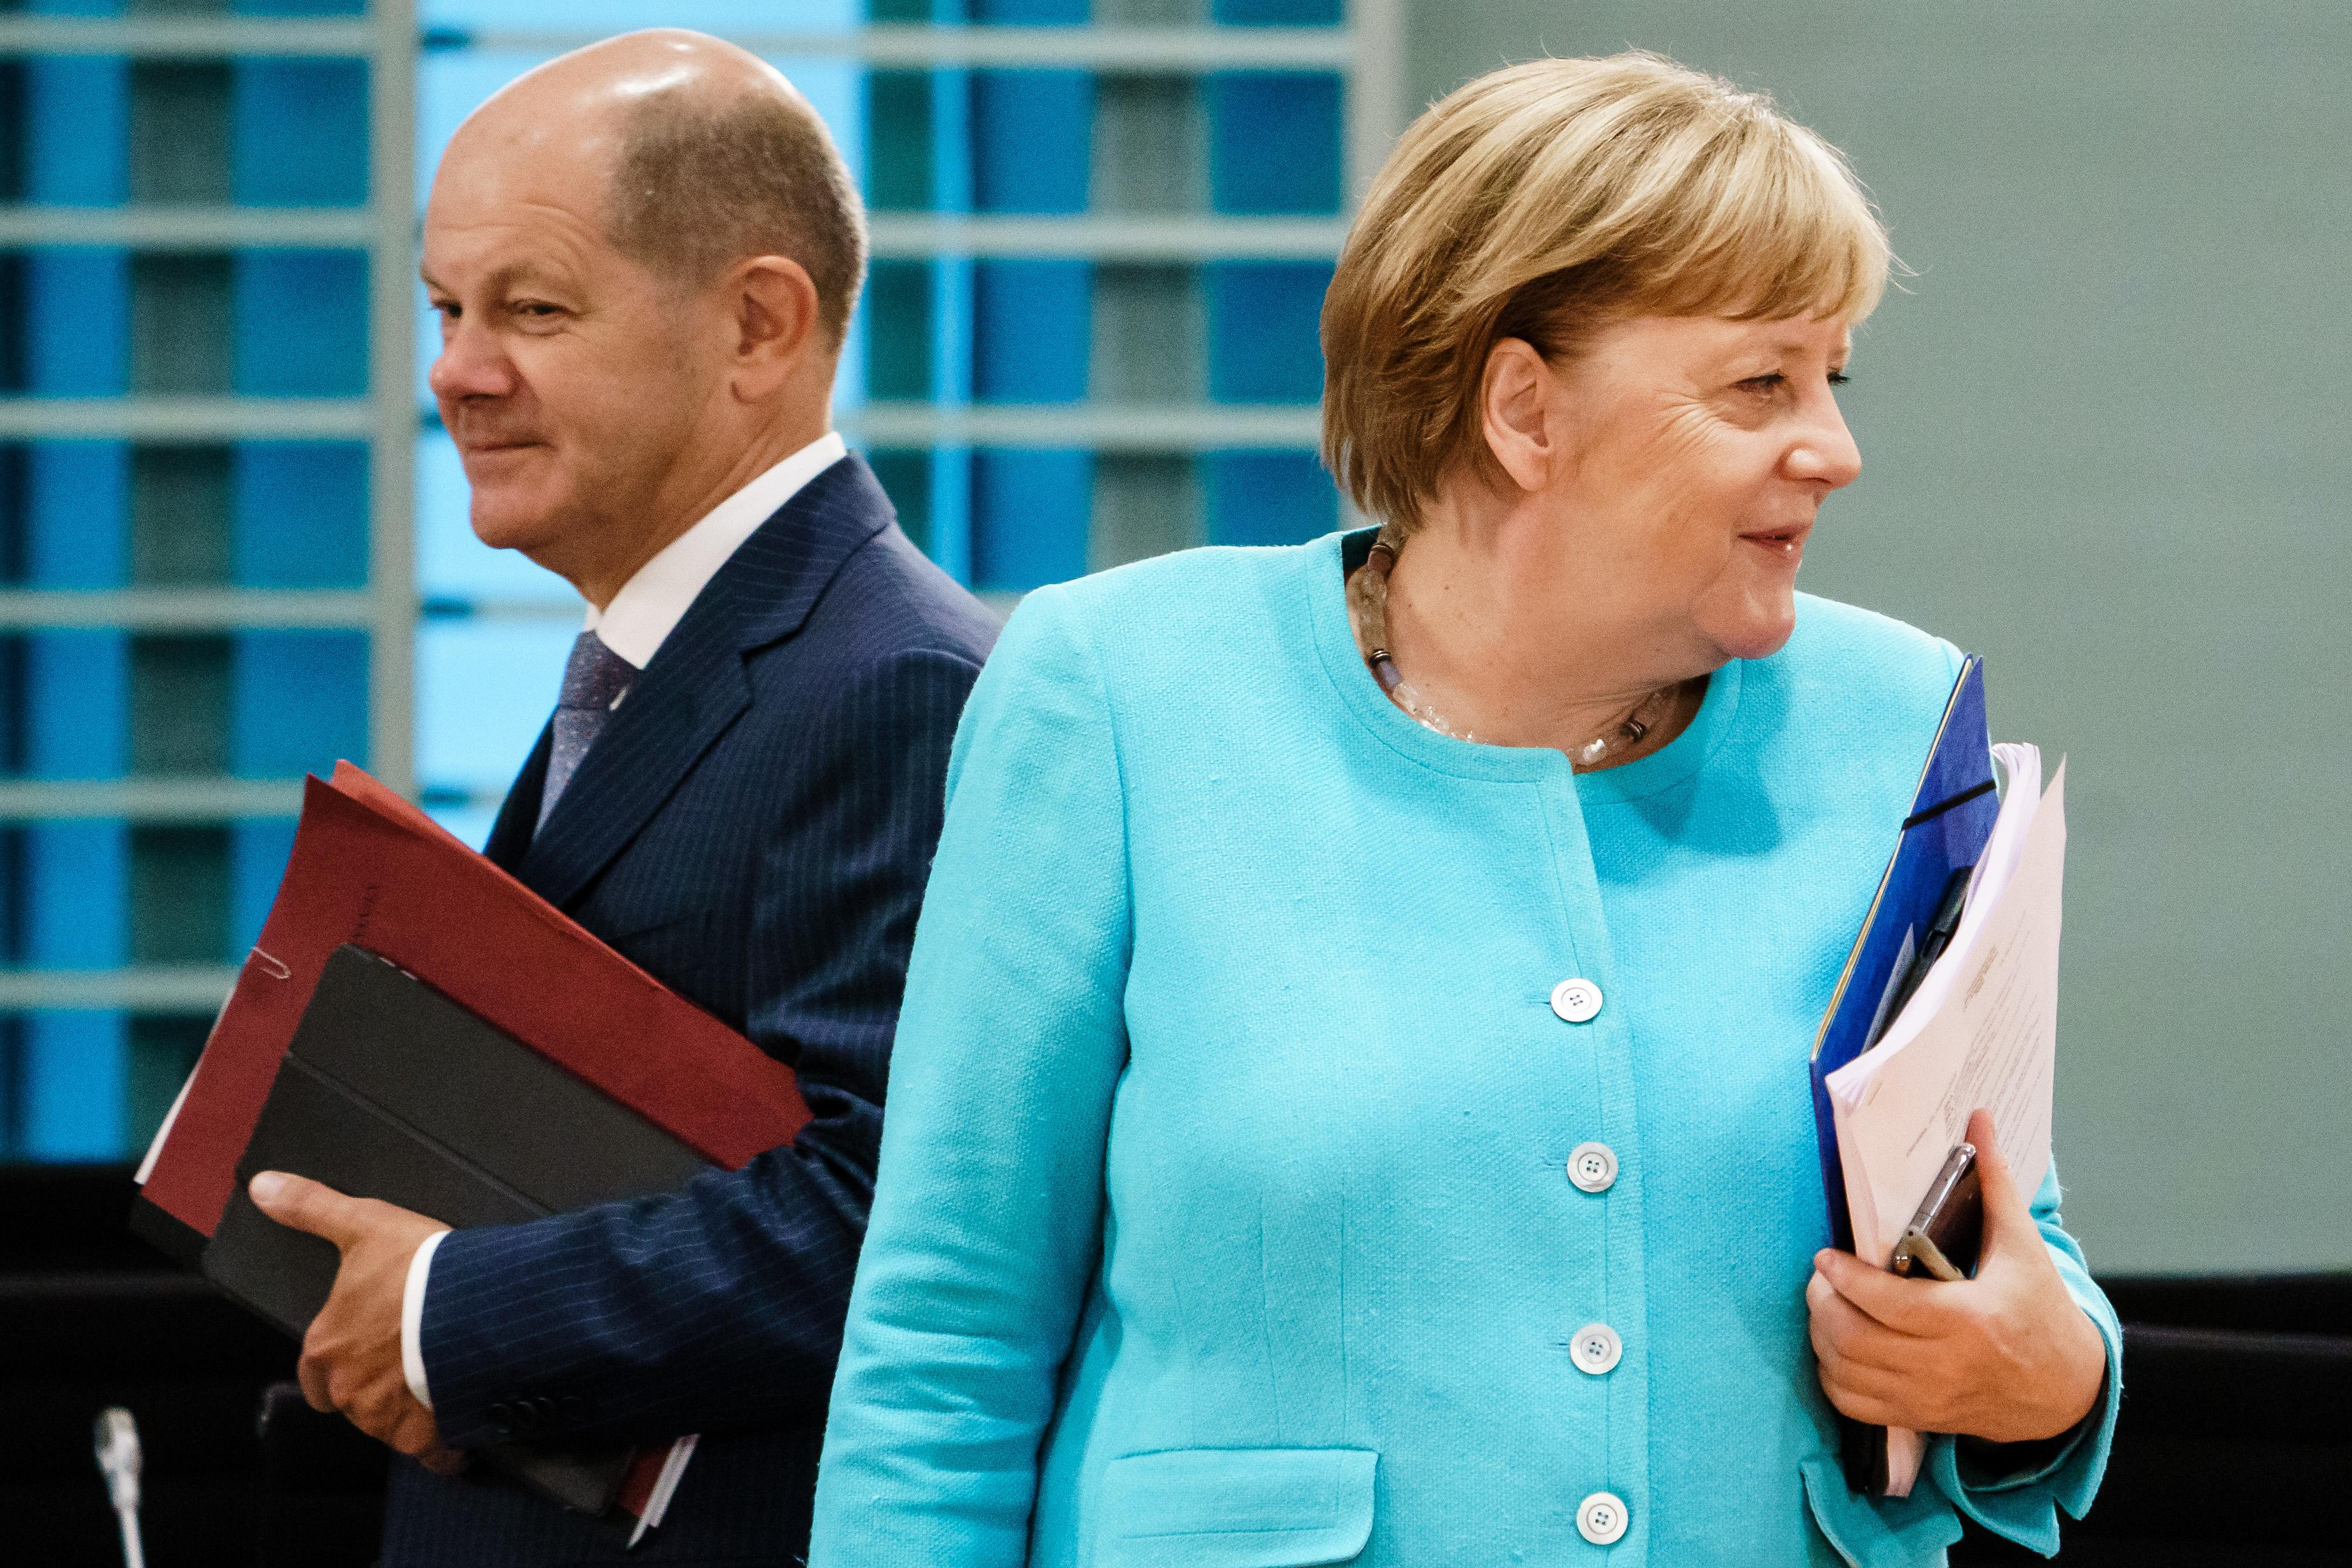 Germany to take on €96bn in new debt next year to weather COVID-19 crisis